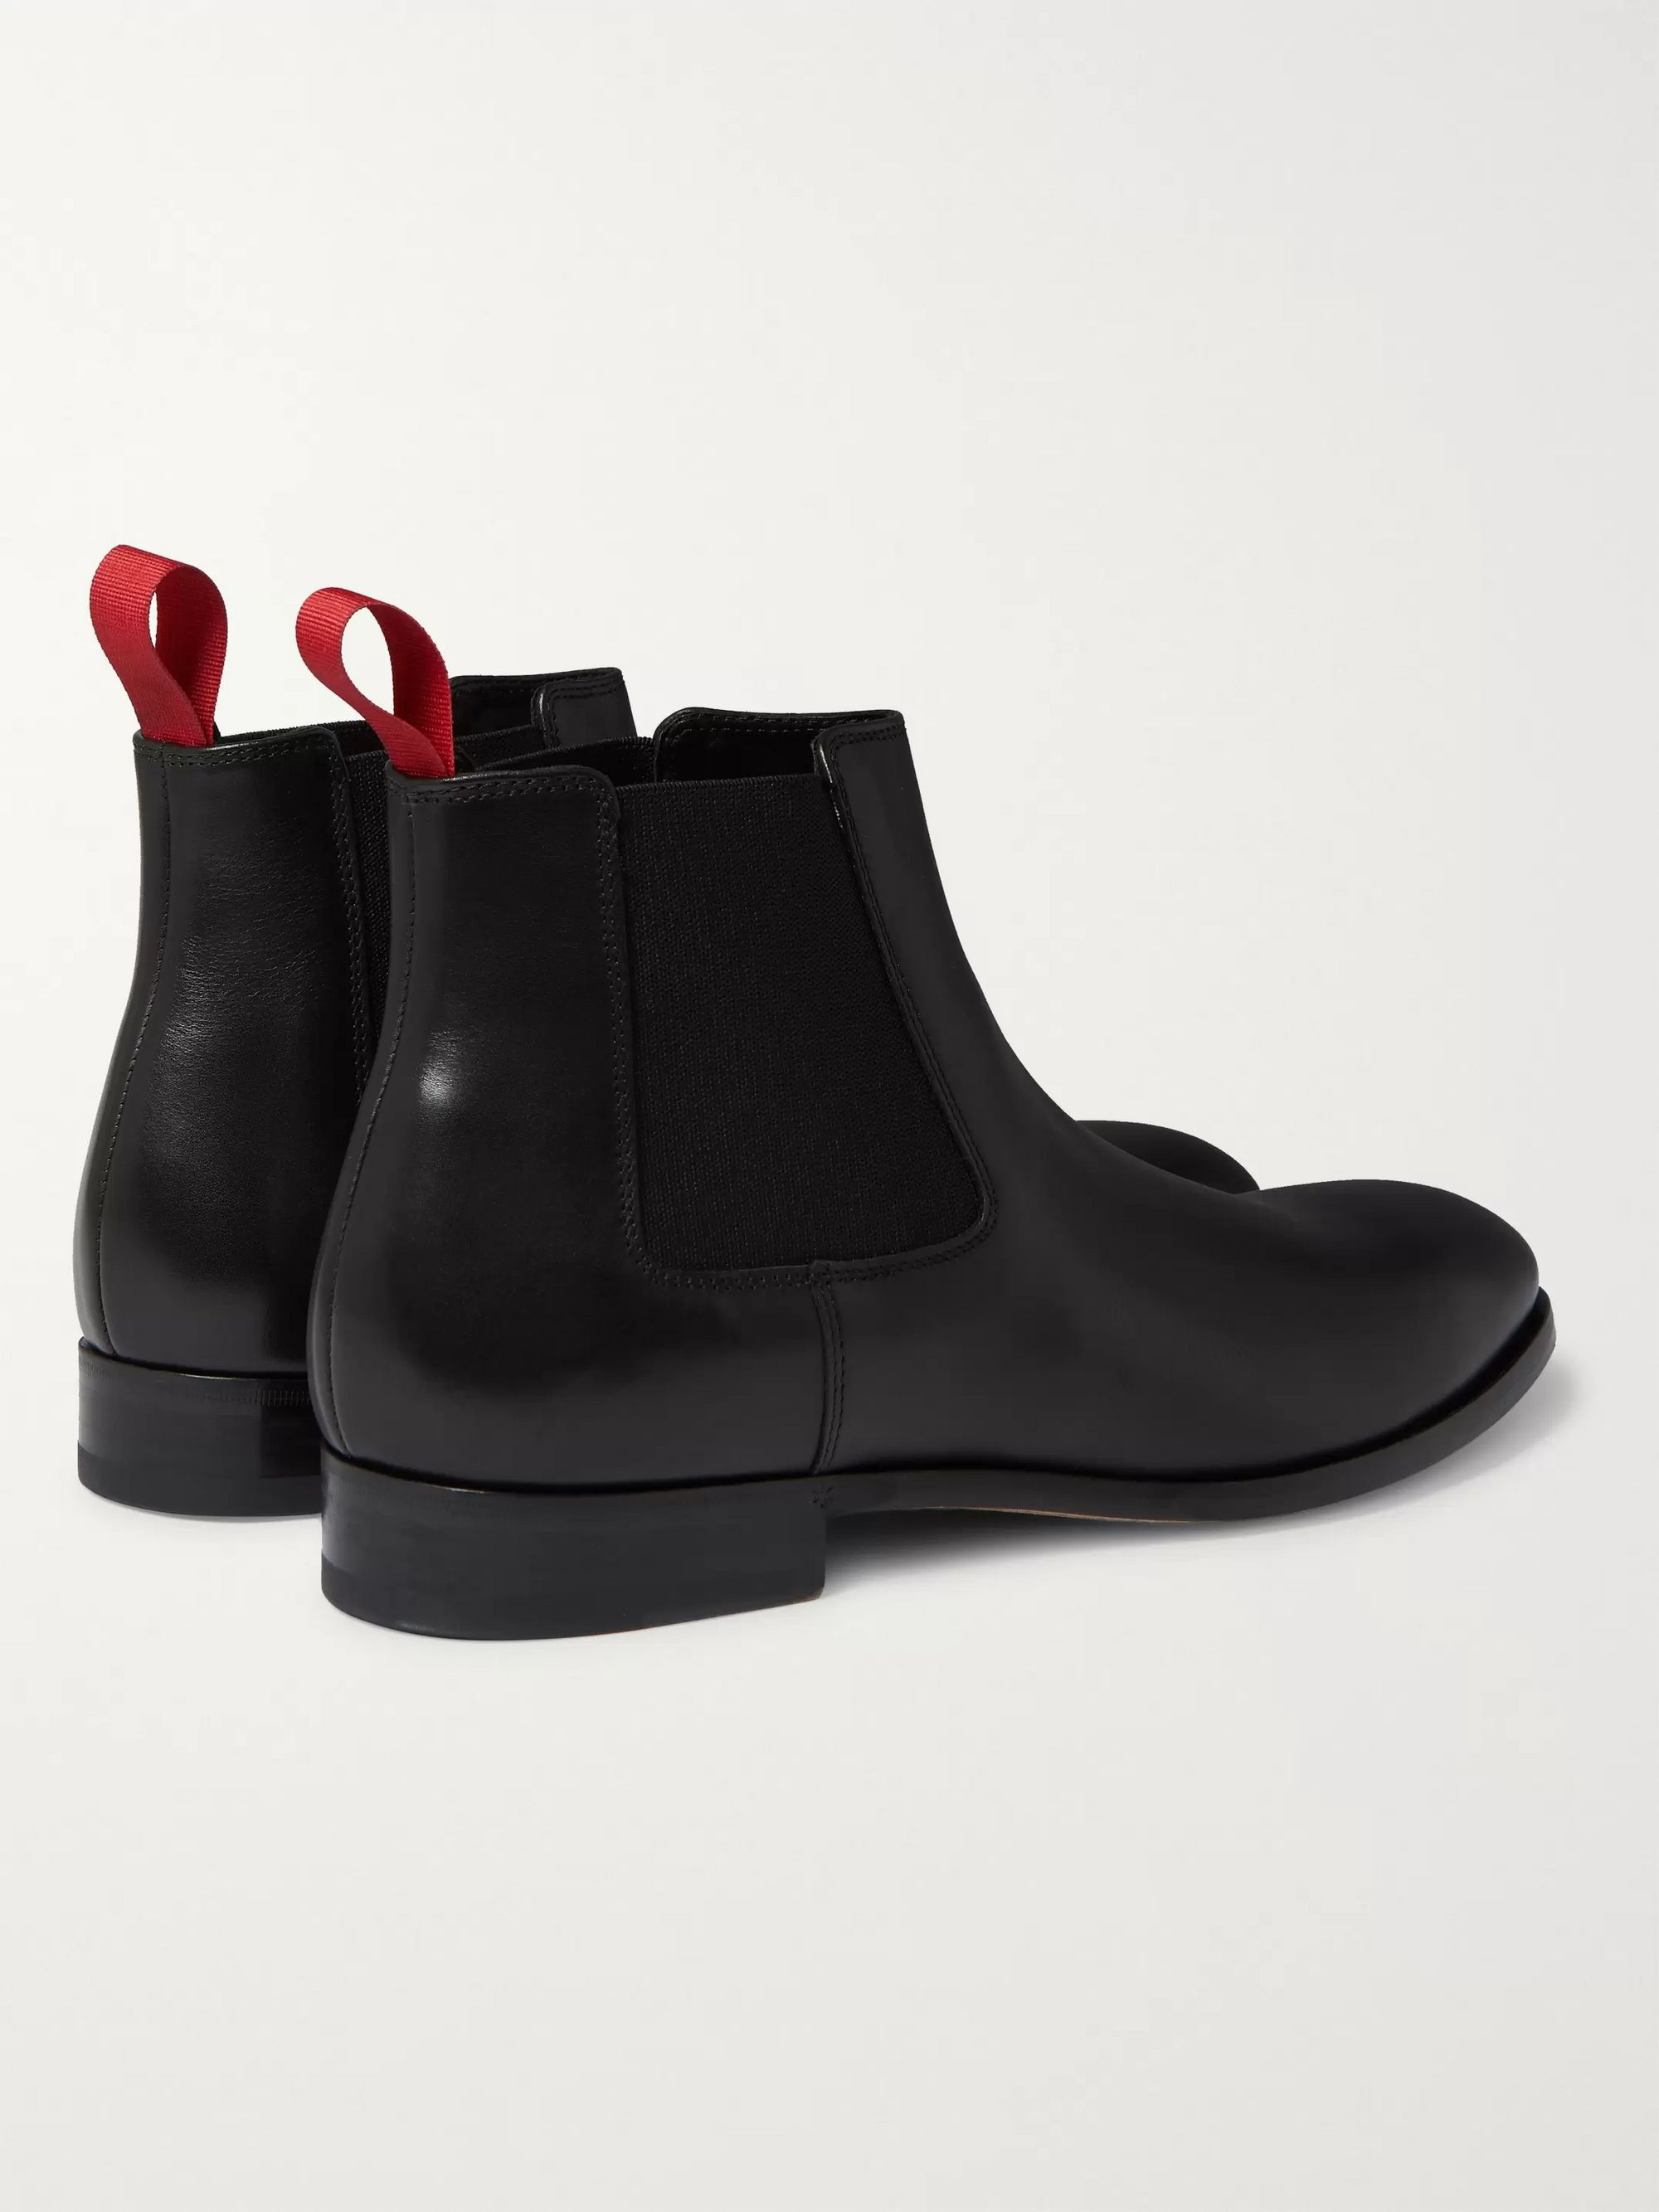 Black Crown Leather Chelsea Boots | Paul Smith